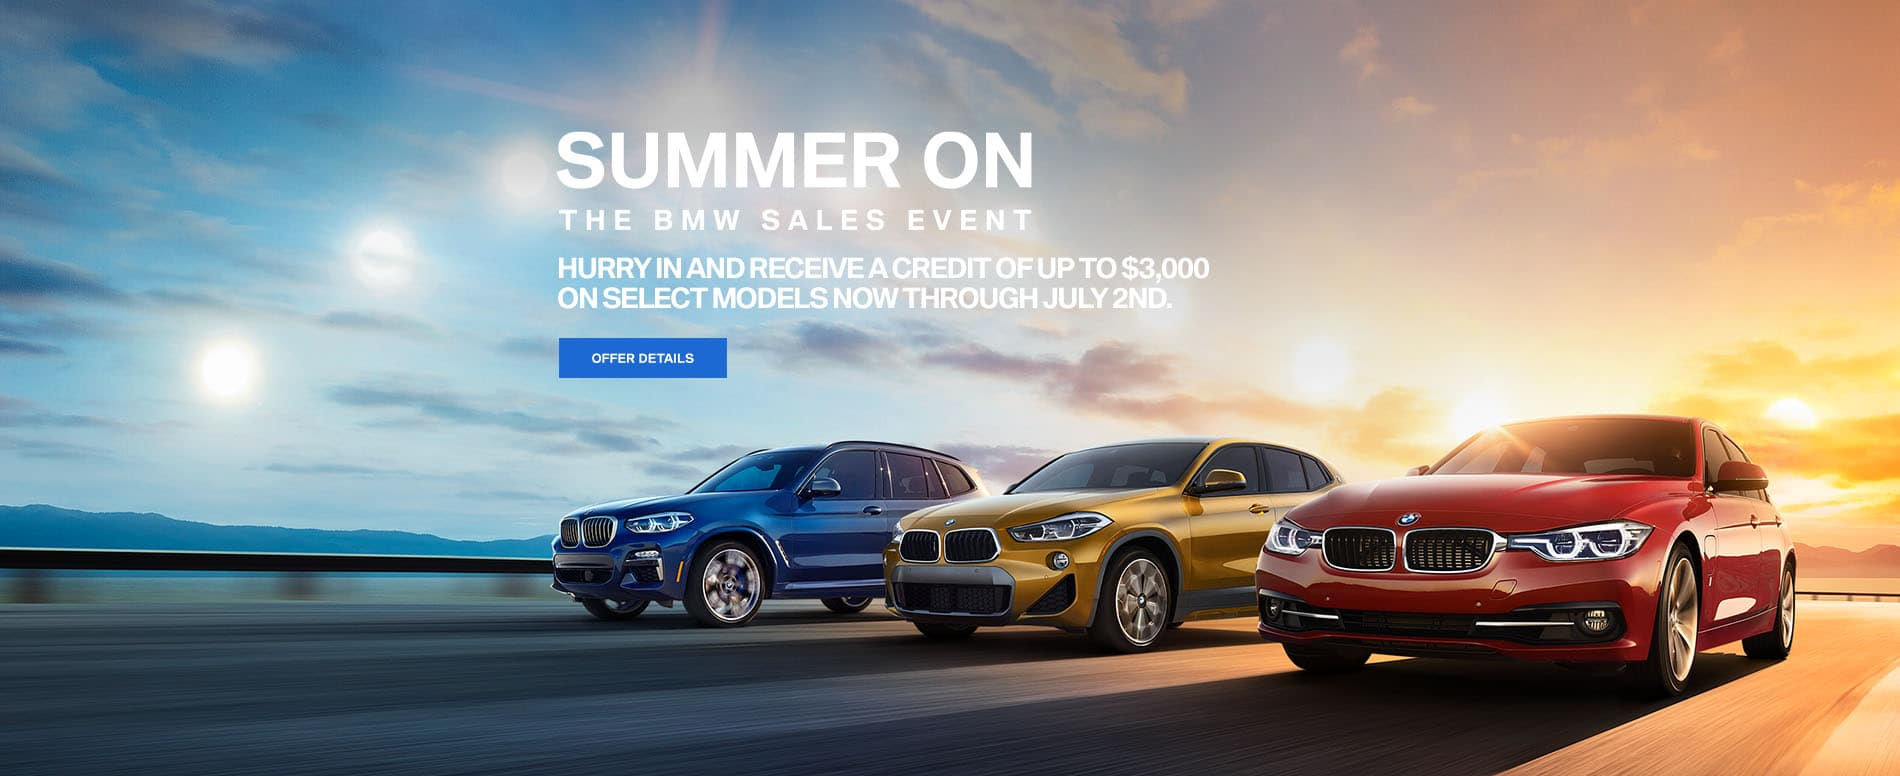 BMW Summer On Campaign